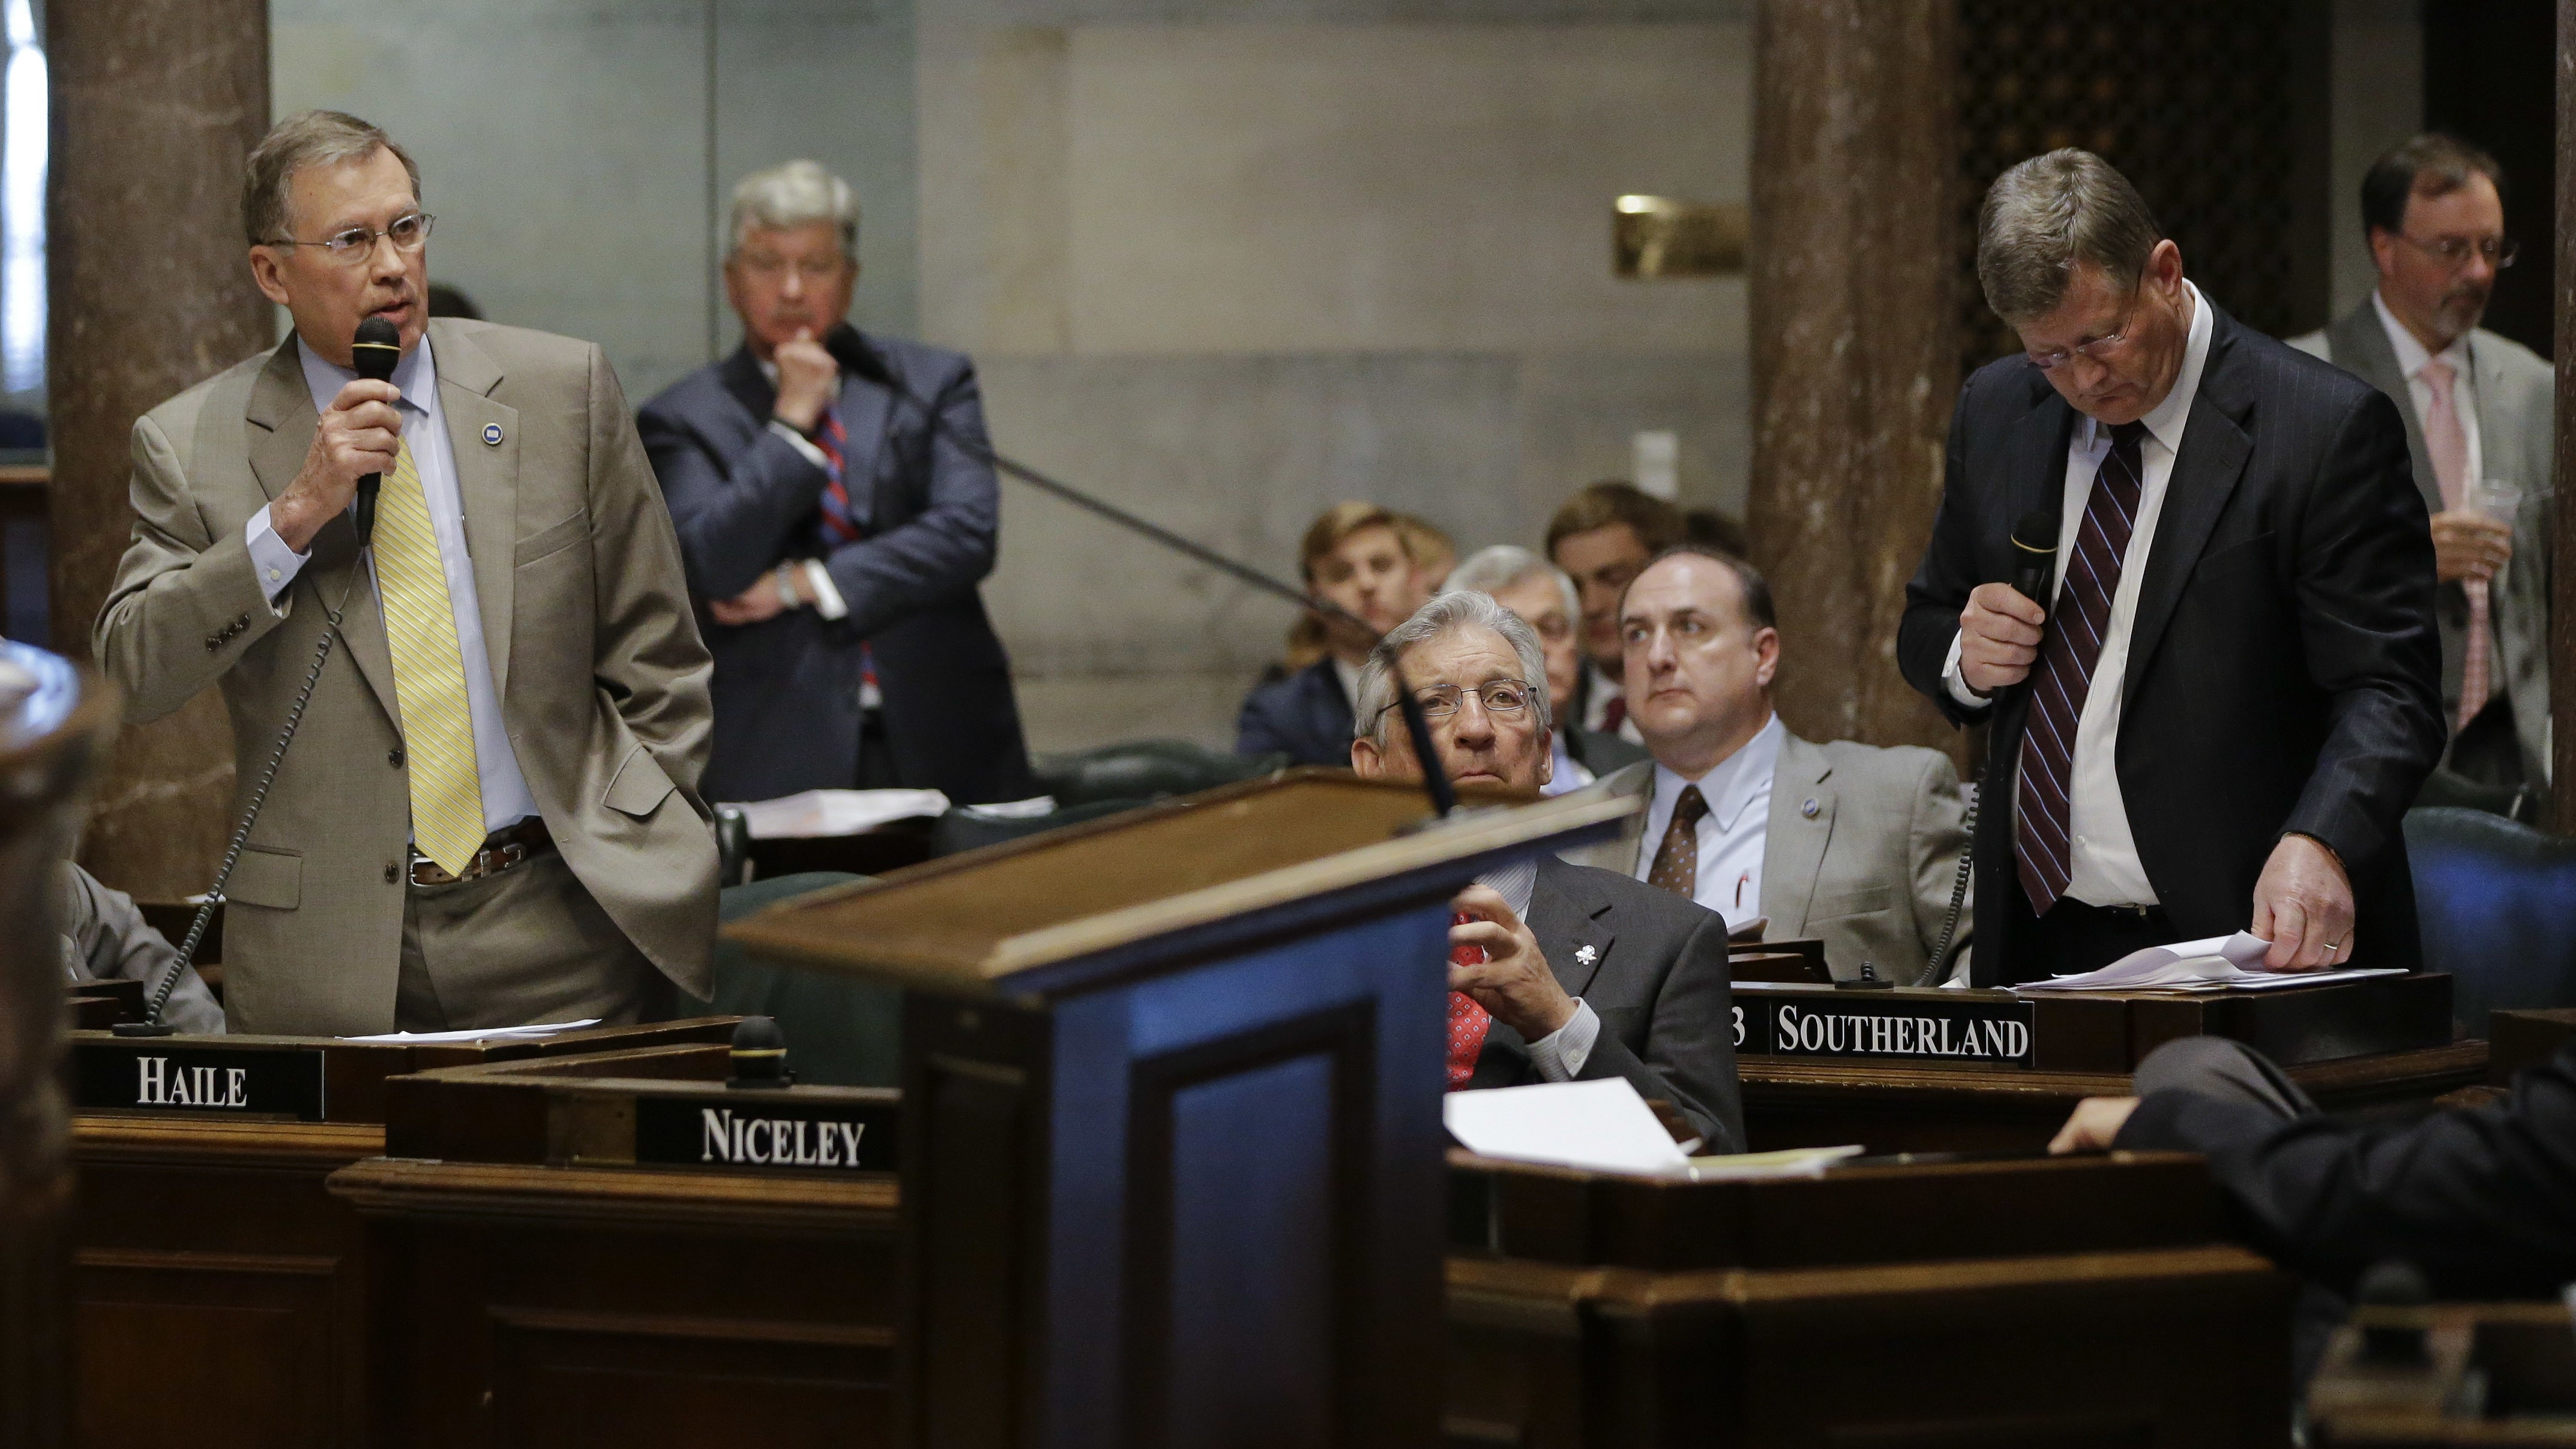 Sen. Ferrell Haile, R-Gallatin, left, speaks during debate on a bill by Sen. Steve Southerland, R-Morristown, front right, Monday, April 4, 2016, in Nashville, Tenn. Southerland's bill called for making the Holy Bible the official book of Tennessee. The Senate passed the bill over the objections of legislative leaders and the Republican governor. (AP Photo/Mark Humphrey)